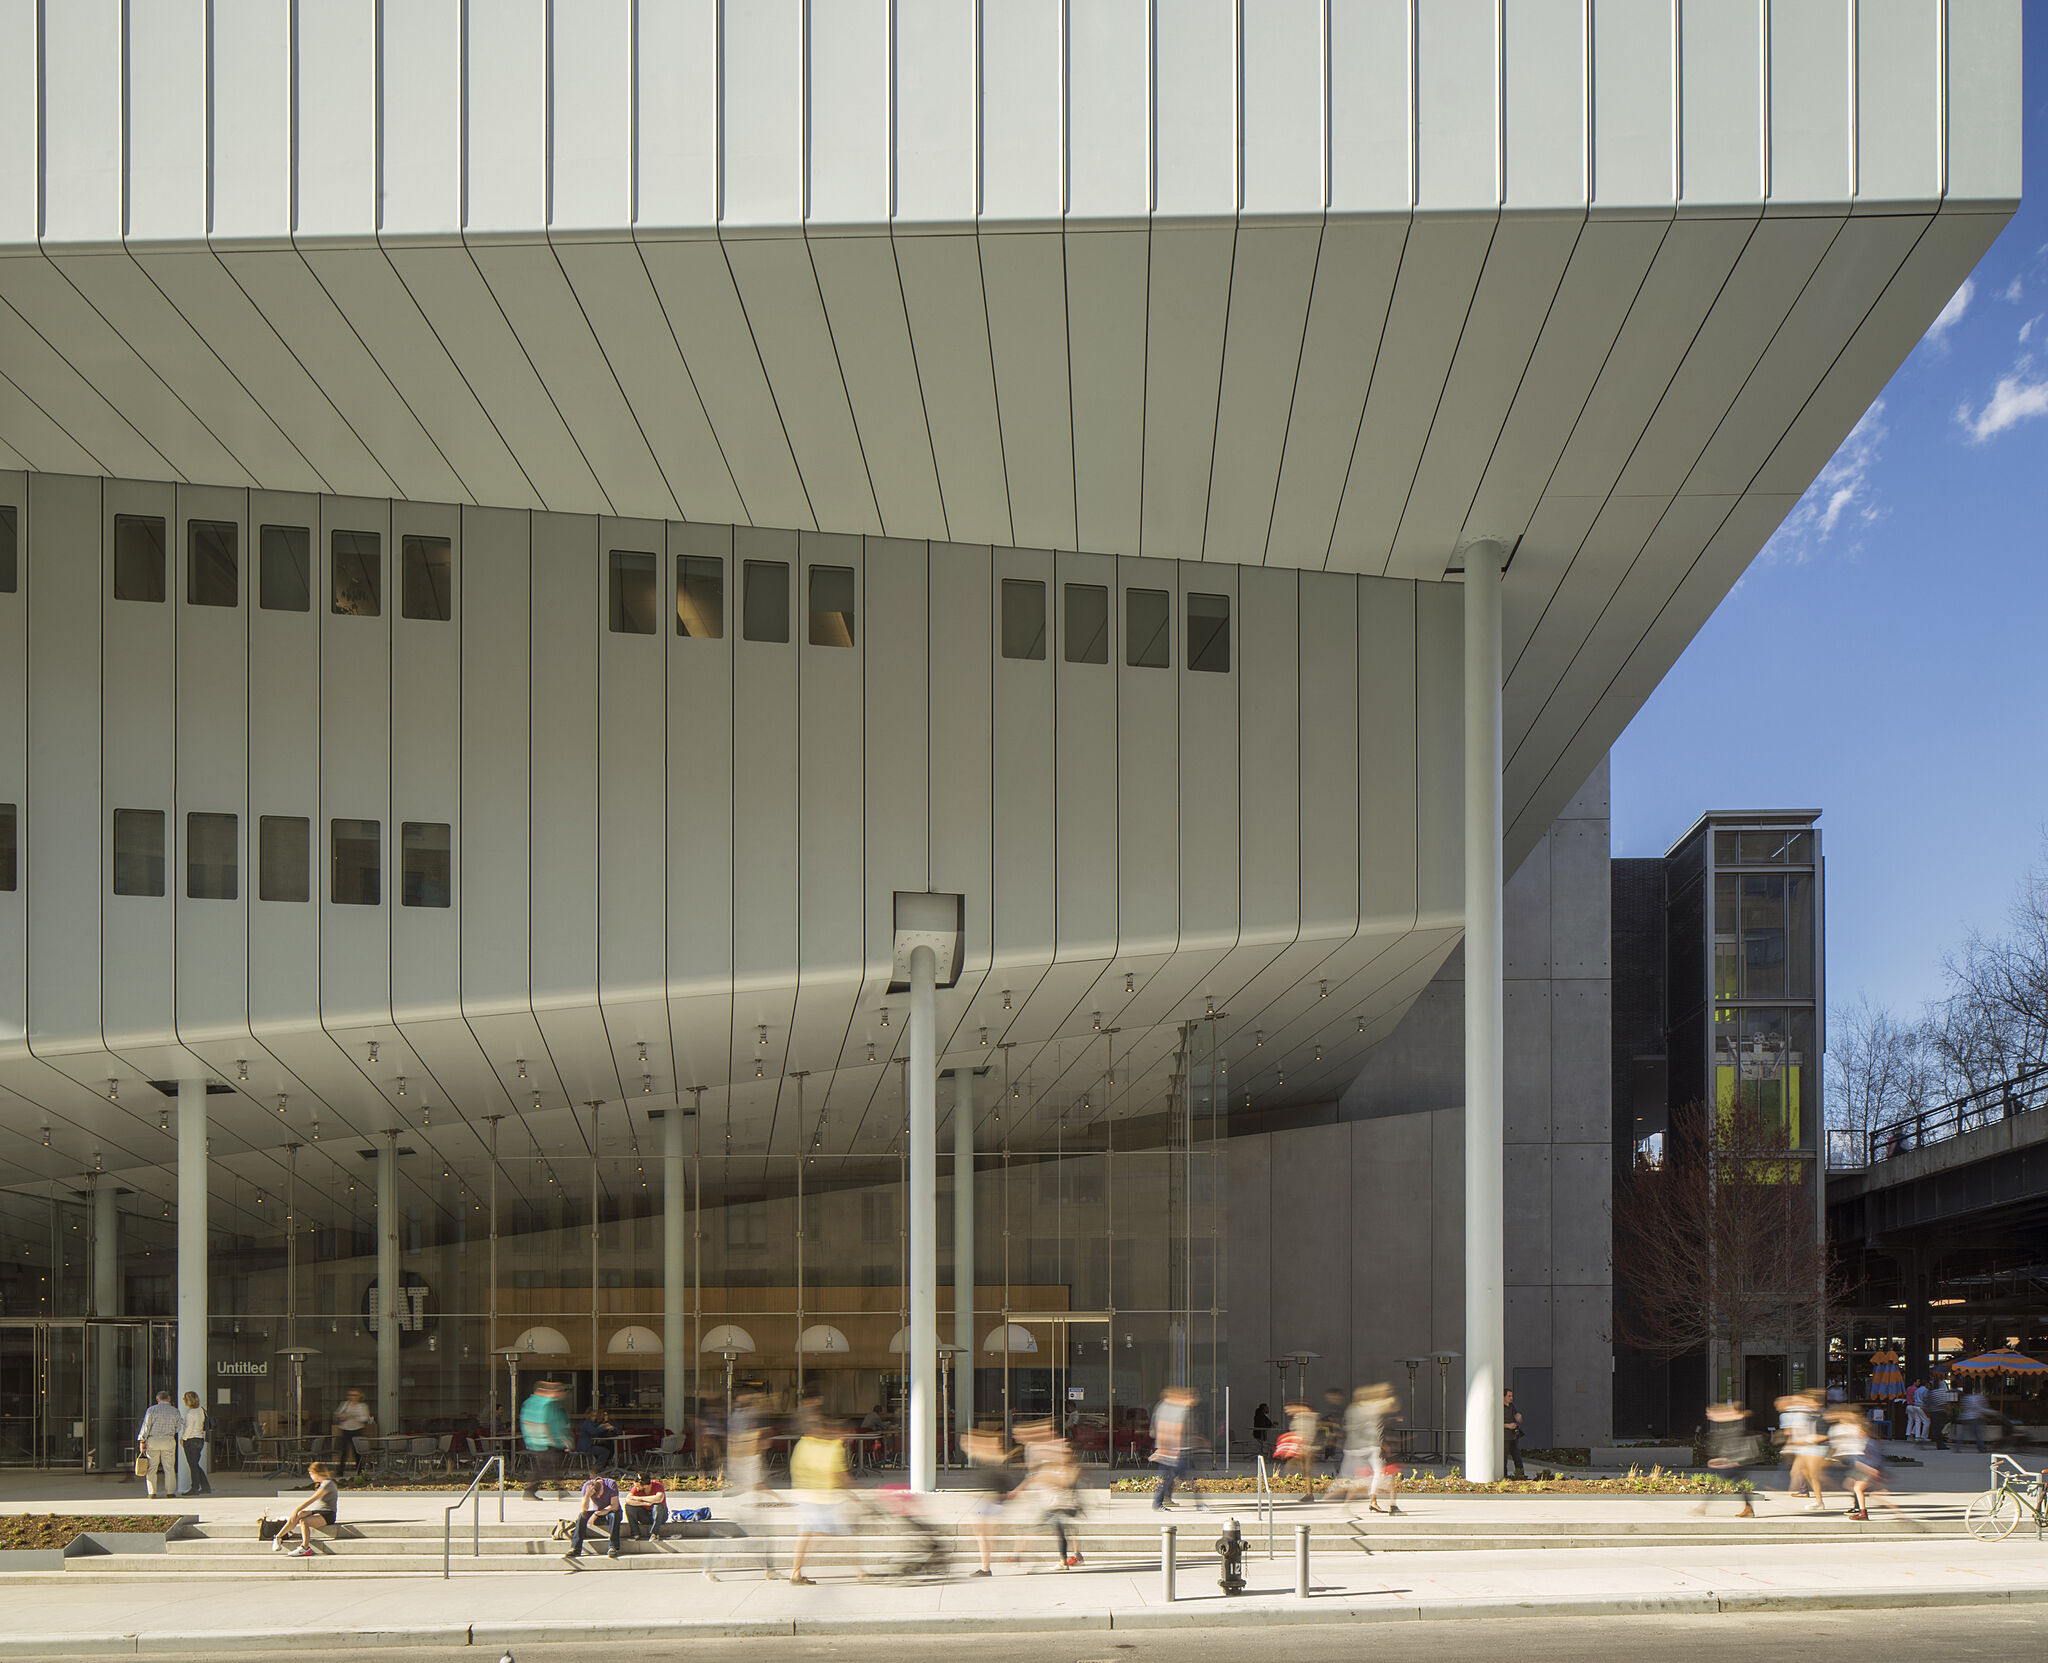 Bright white or grey building, the Whitney Museum of American Art, pictured with time lapsed people in front of the museum columns on a bright day.